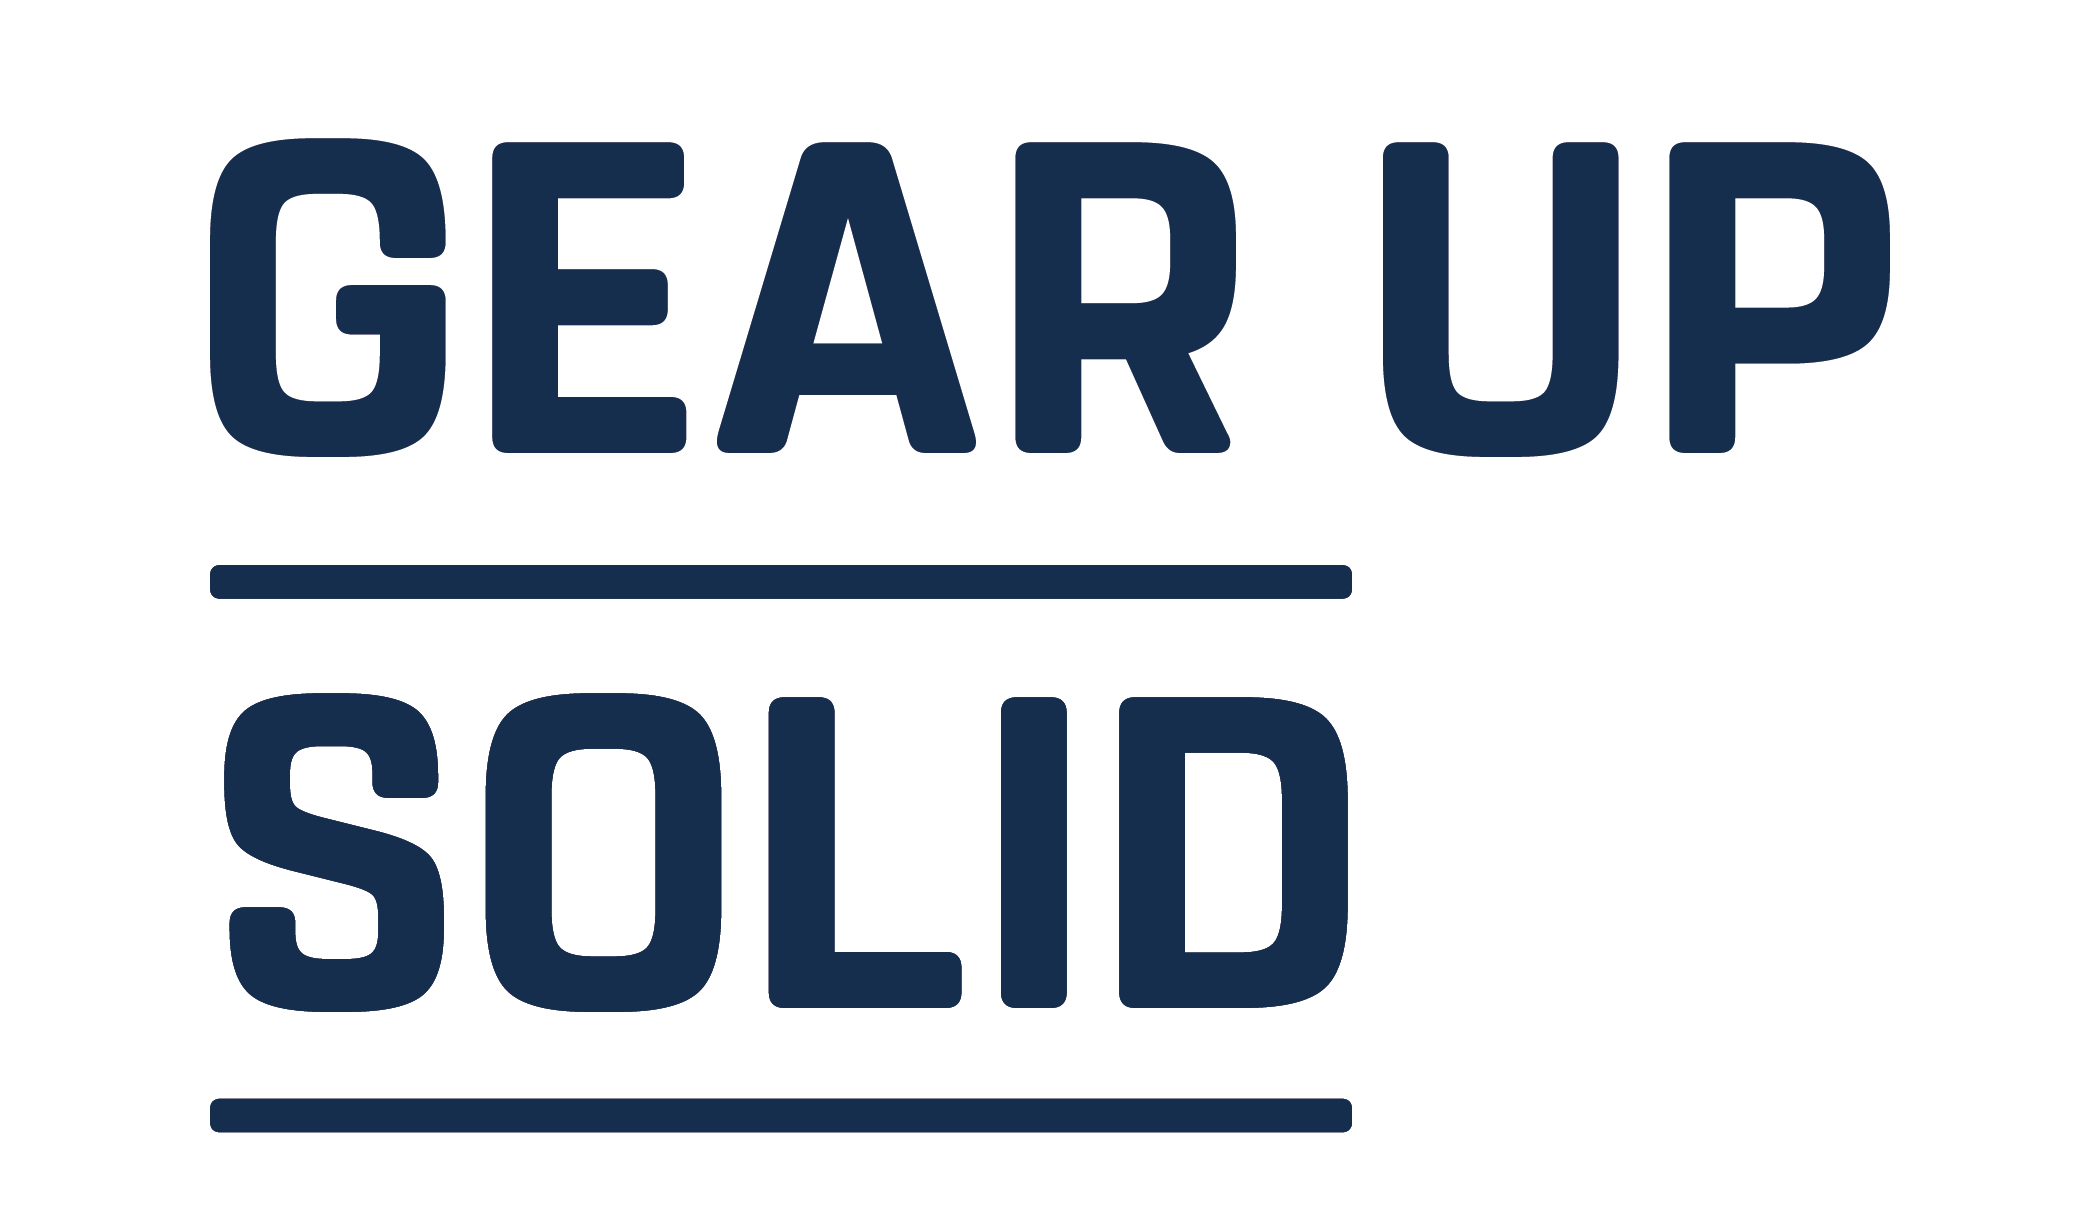 Gear up solide